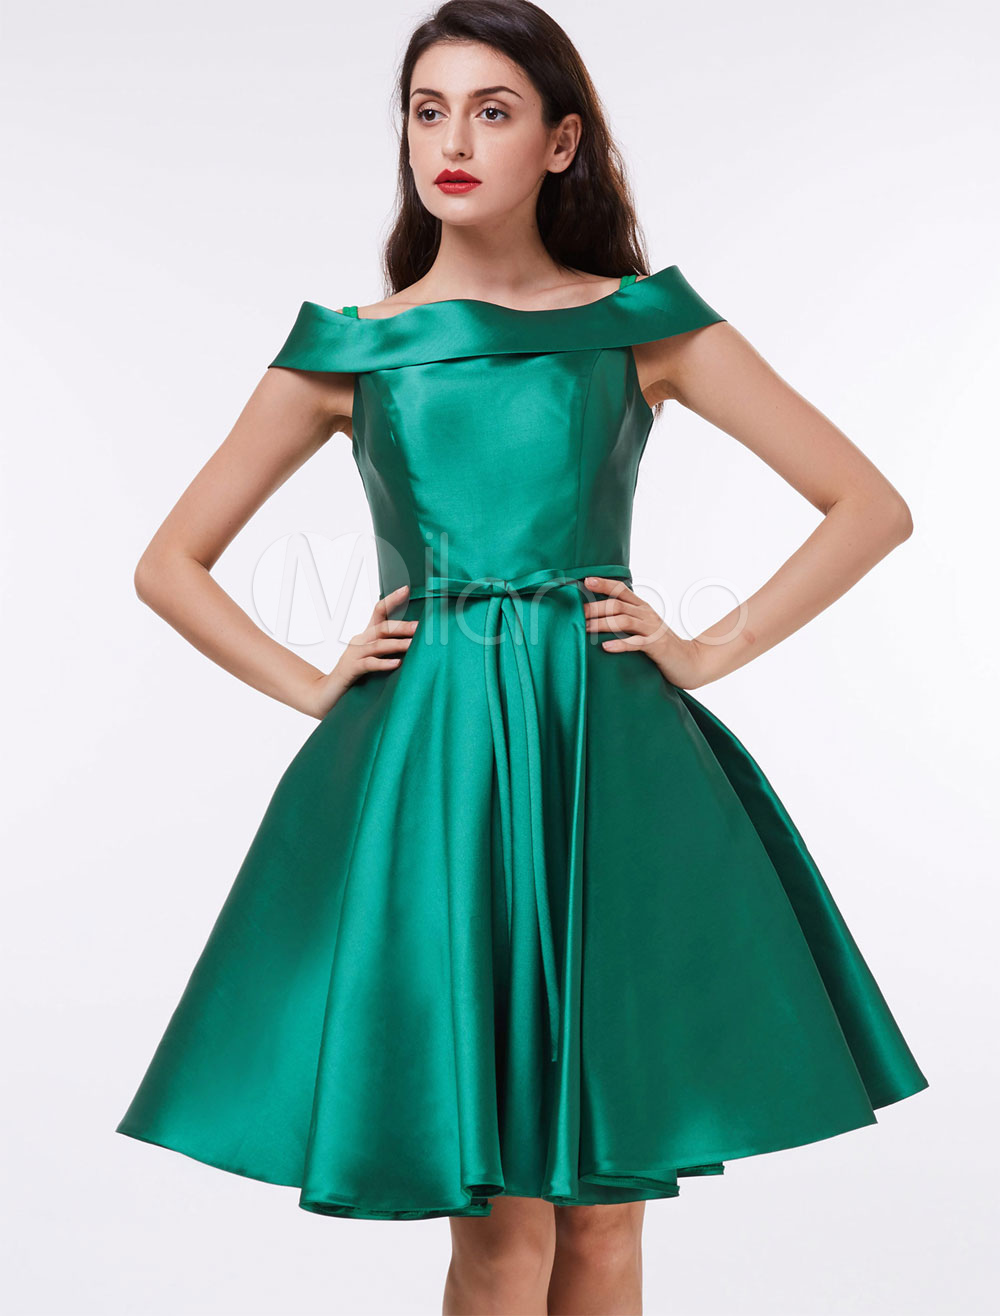 Women Vintage Dress 1950s Dress Green Bow Sash Short Sleeve Swing Dress